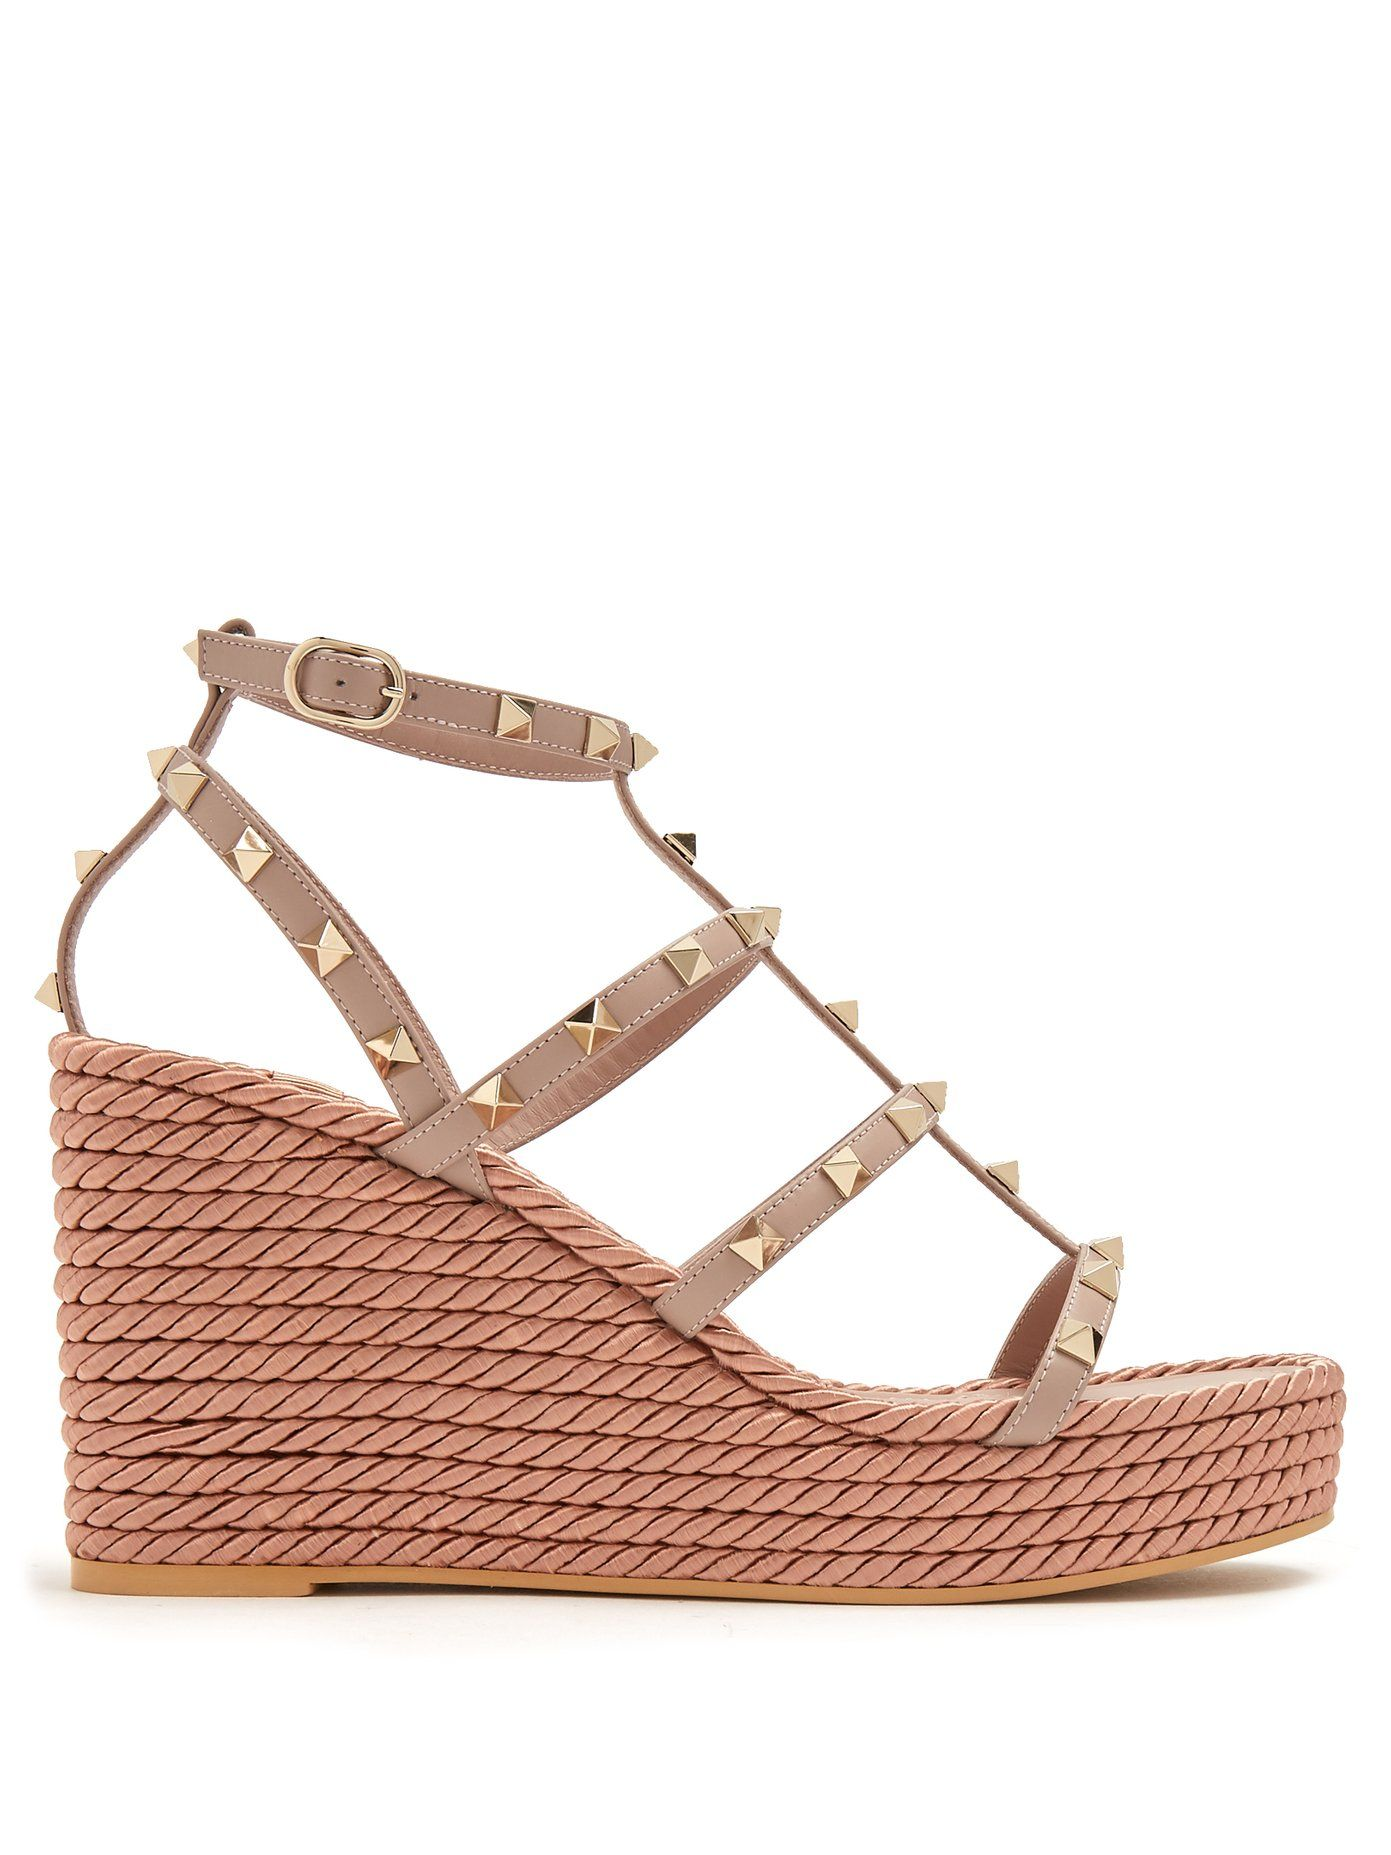 54f9ec16a Click here to buy Valentino Torchon Rockstud leather wedge sandals at  MATCHESFASHION.COM